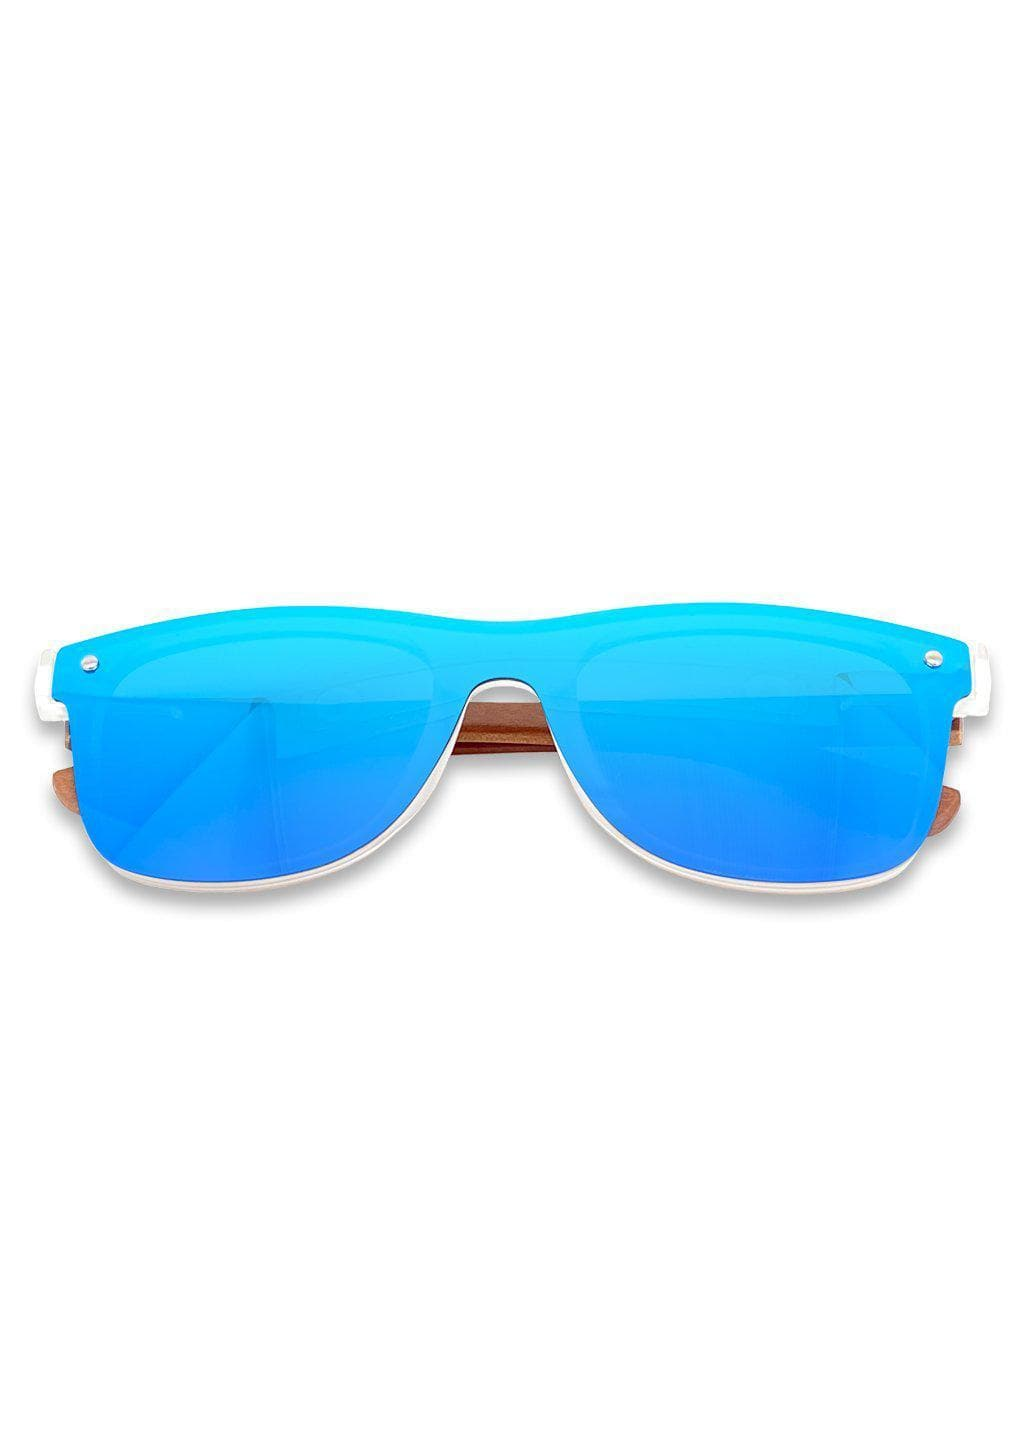 Eyewood tomorrow is our modern cool take on classic models. This is Gemeni with blue mirror lenses. Nice wooden sunglasses.